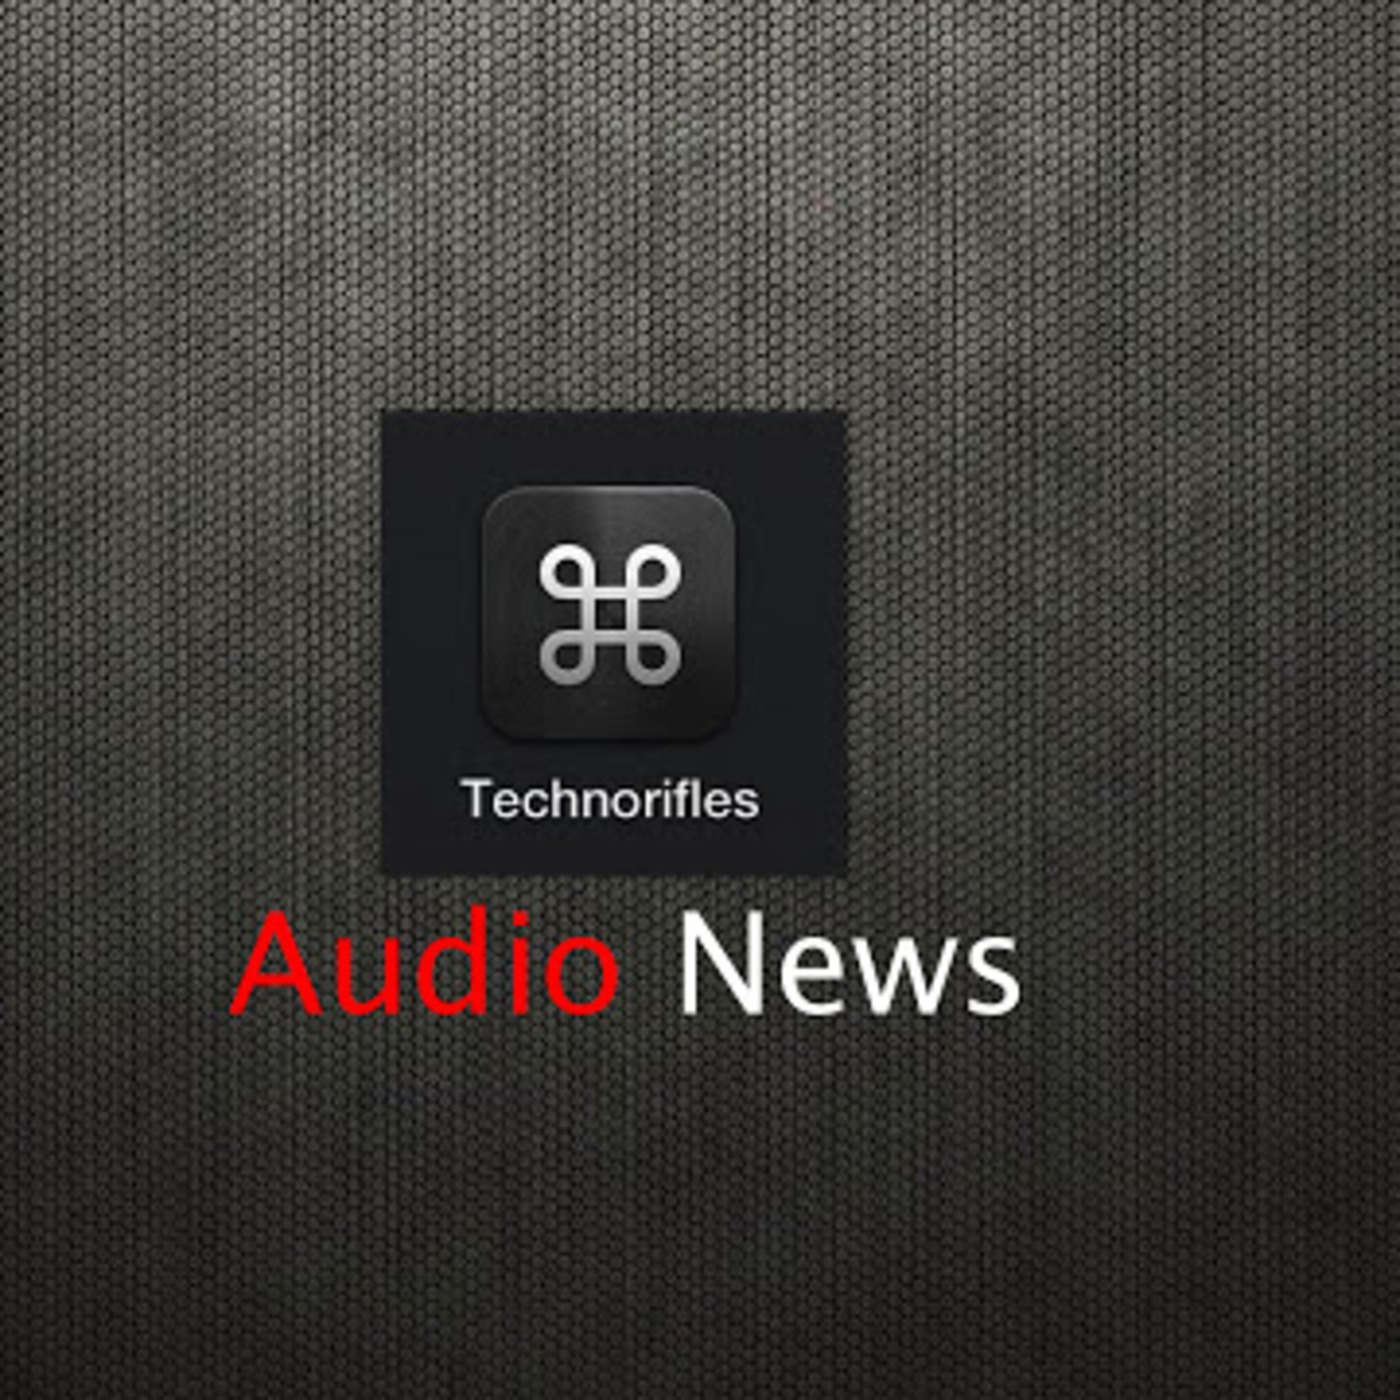 Audio News